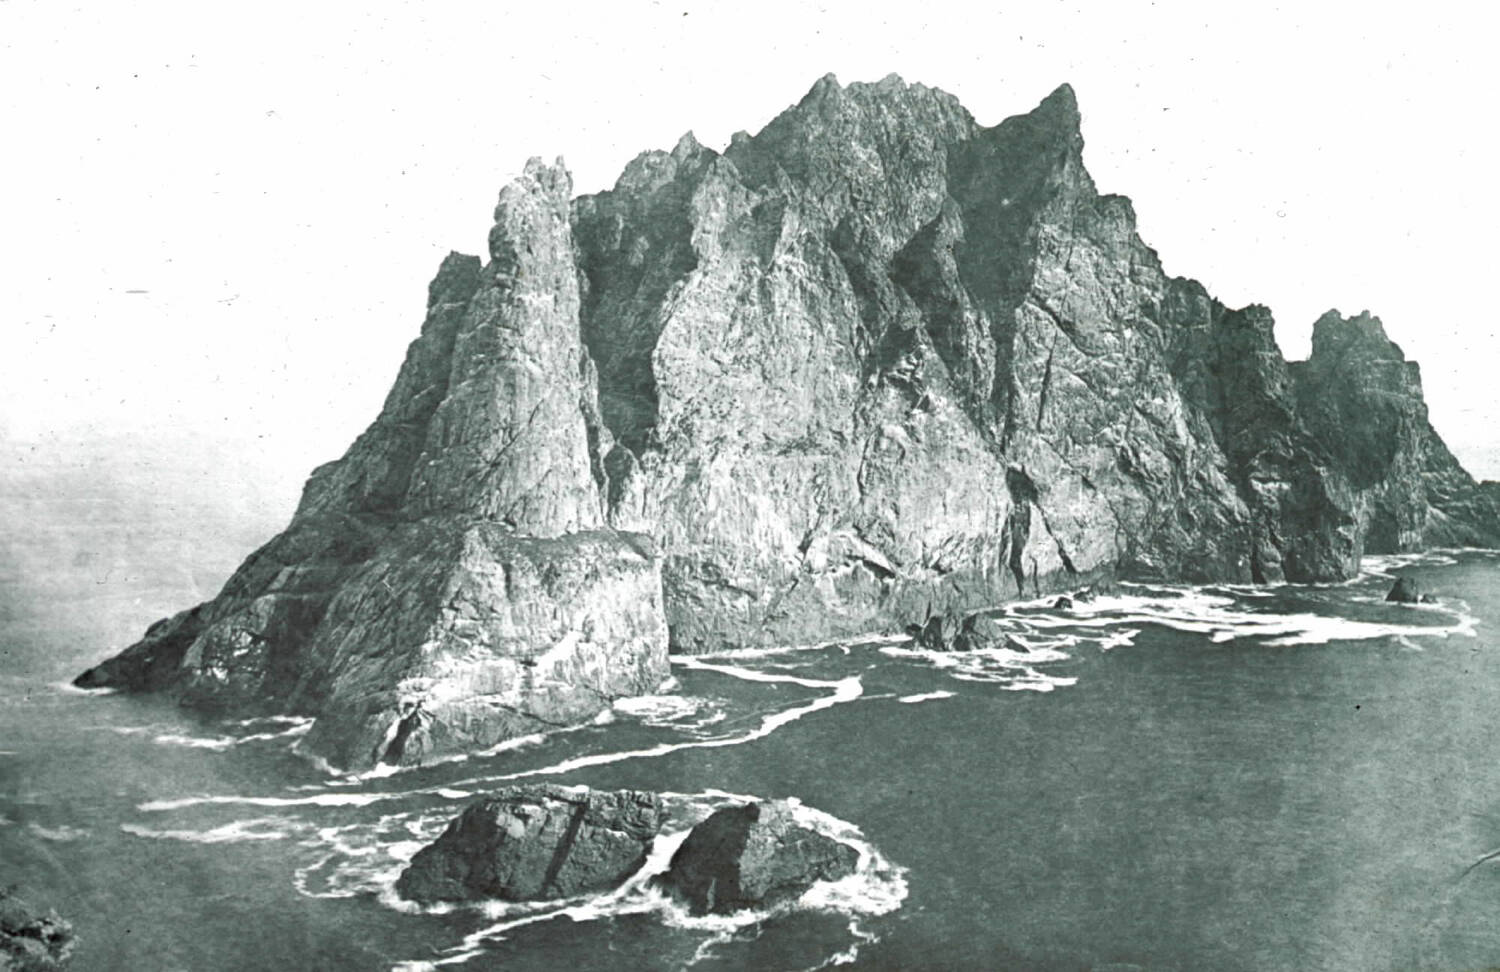 Glass plate negative of Boreray in the St Kilda archipelago, #192 © National Trust for Scotland, St Kilda